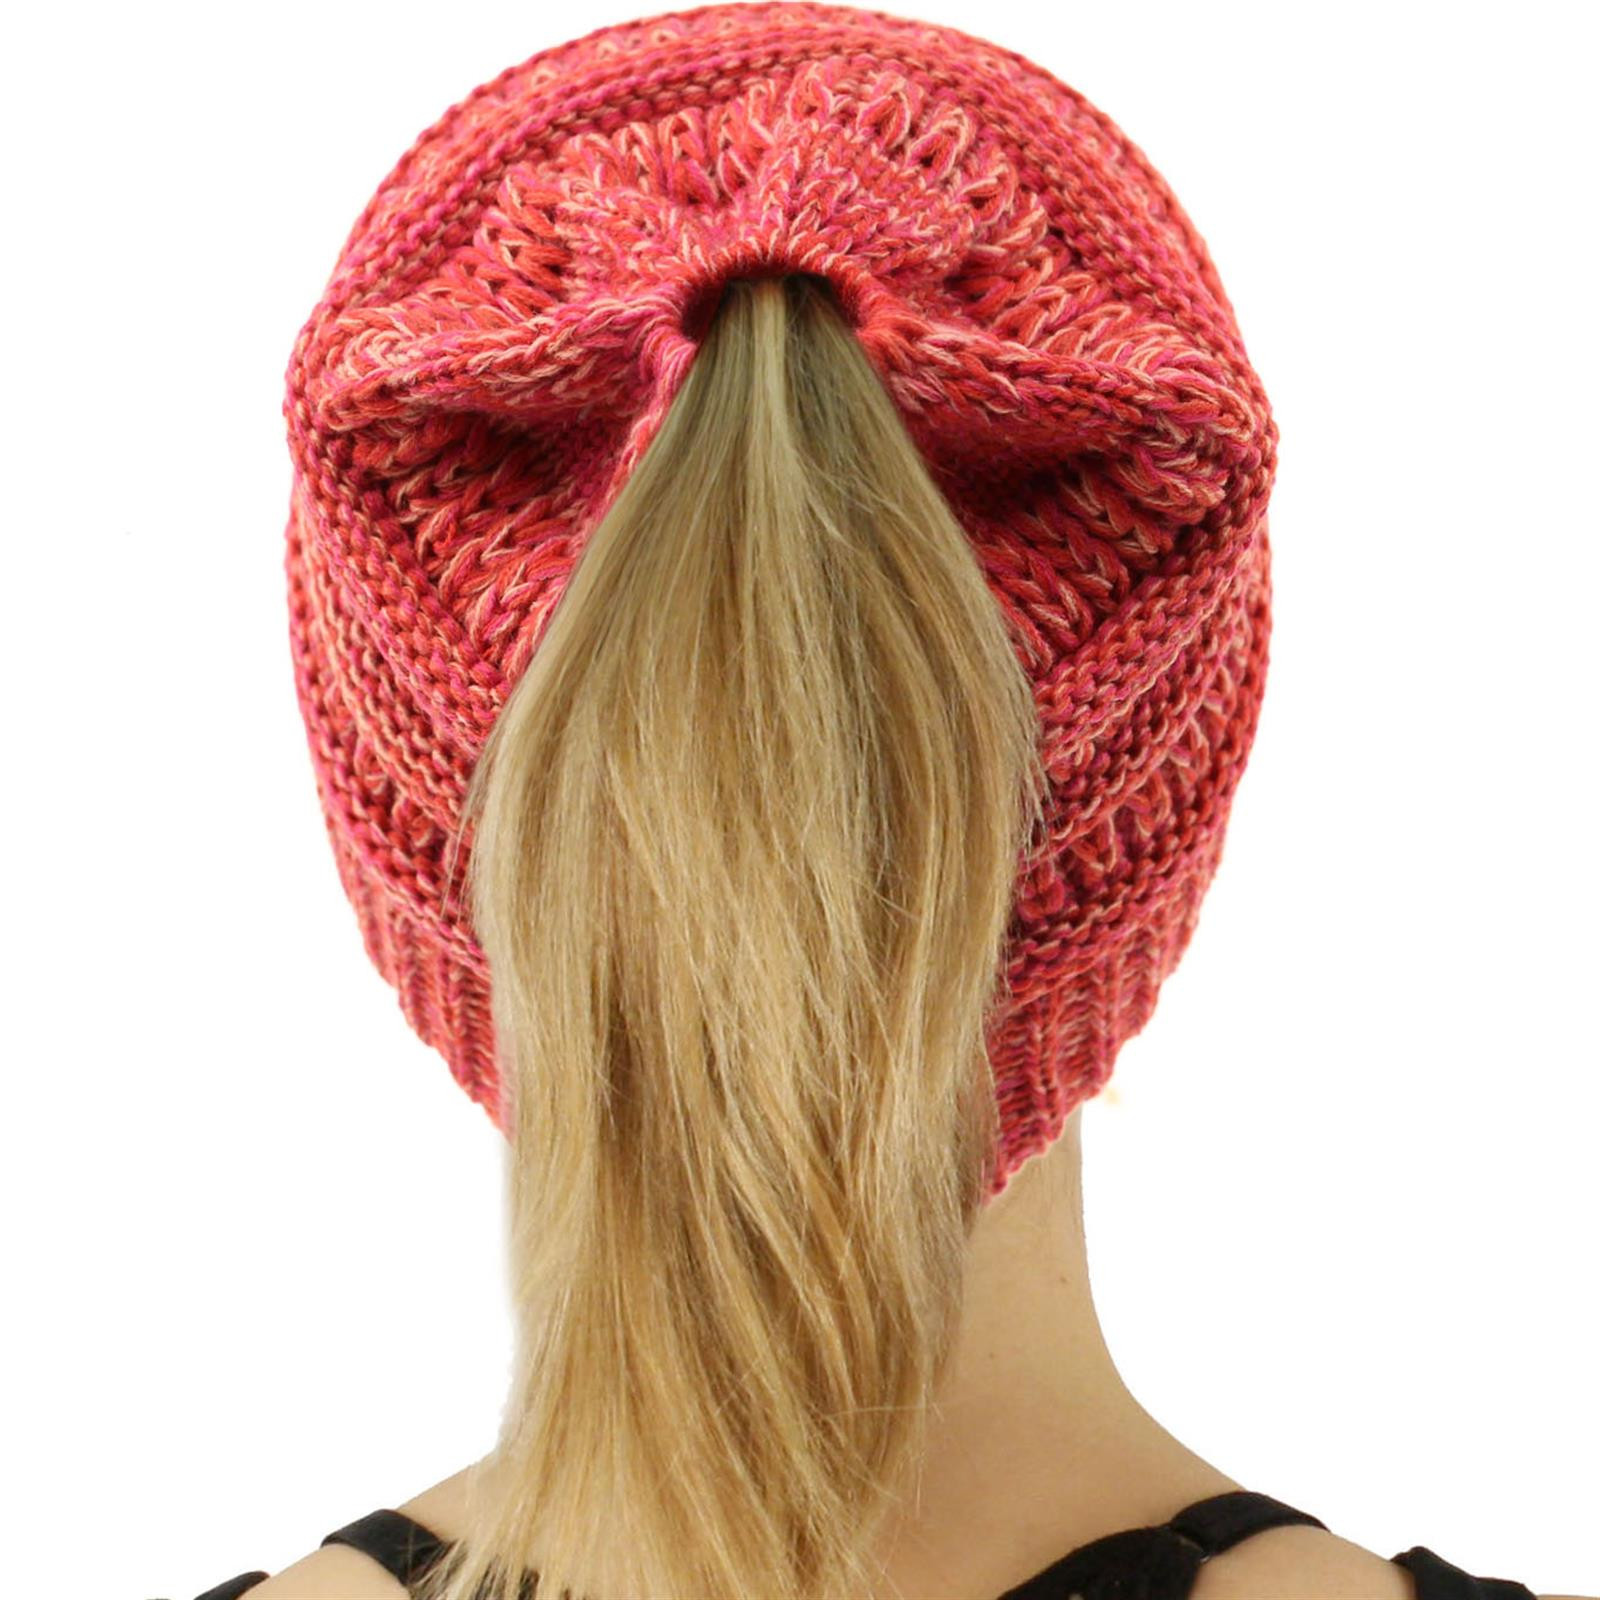 Hats for Buns Fresh Cc Beanietail Messy High Bun Ponytail Stretchy Knit Beanie Of Wonderful 40 Photos Hats for Buns